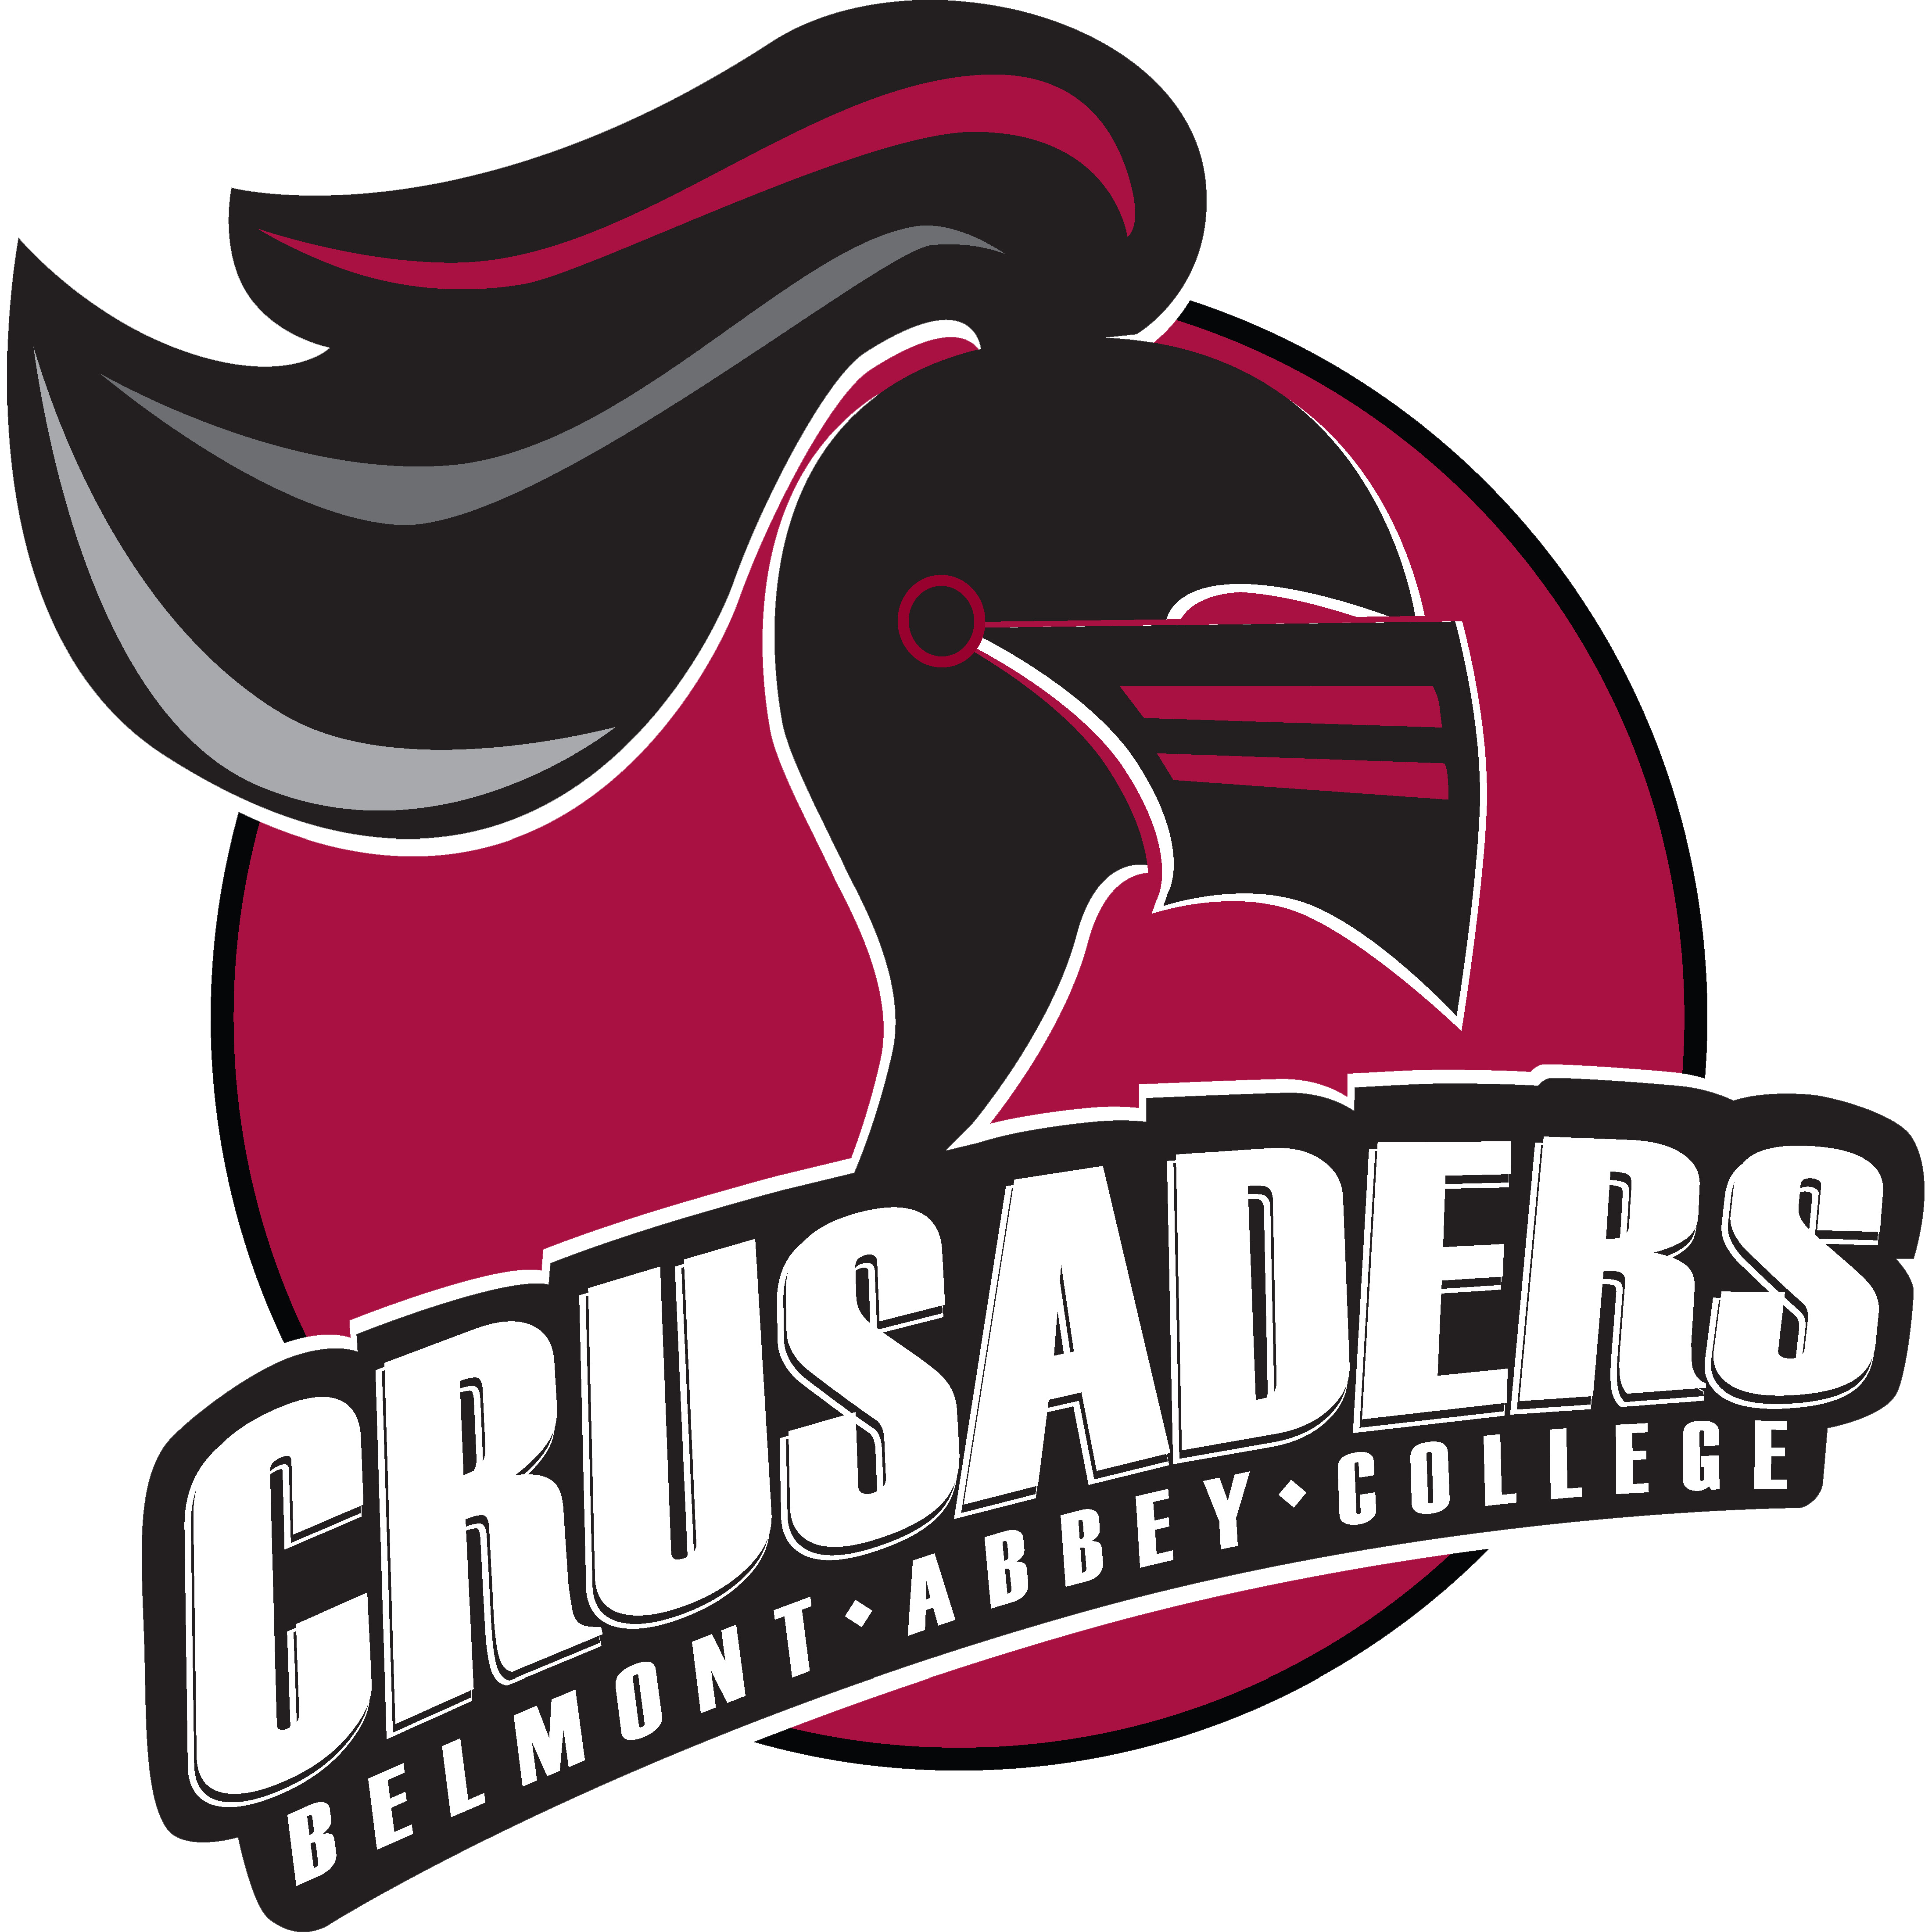 Belmont abbey womens college. Logo clipart track and field